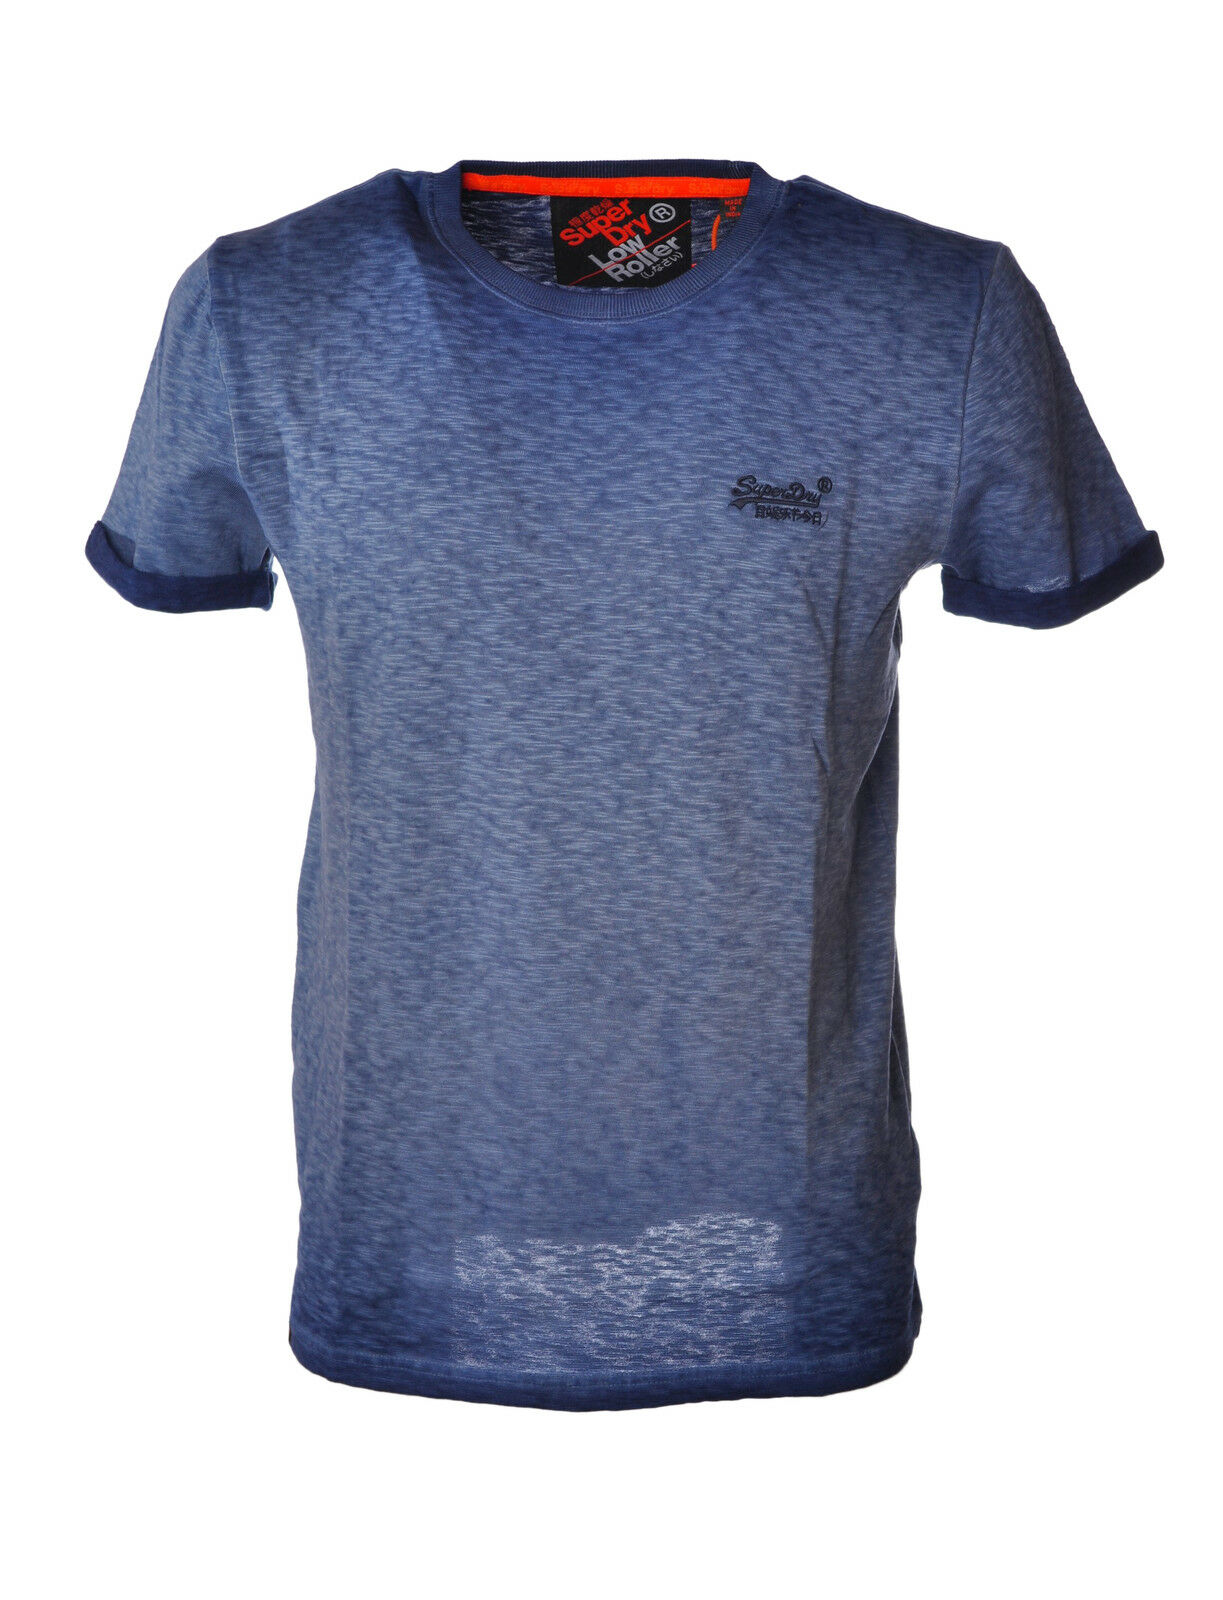 Superdry  -  T - Male - Blau - 3486121A185624